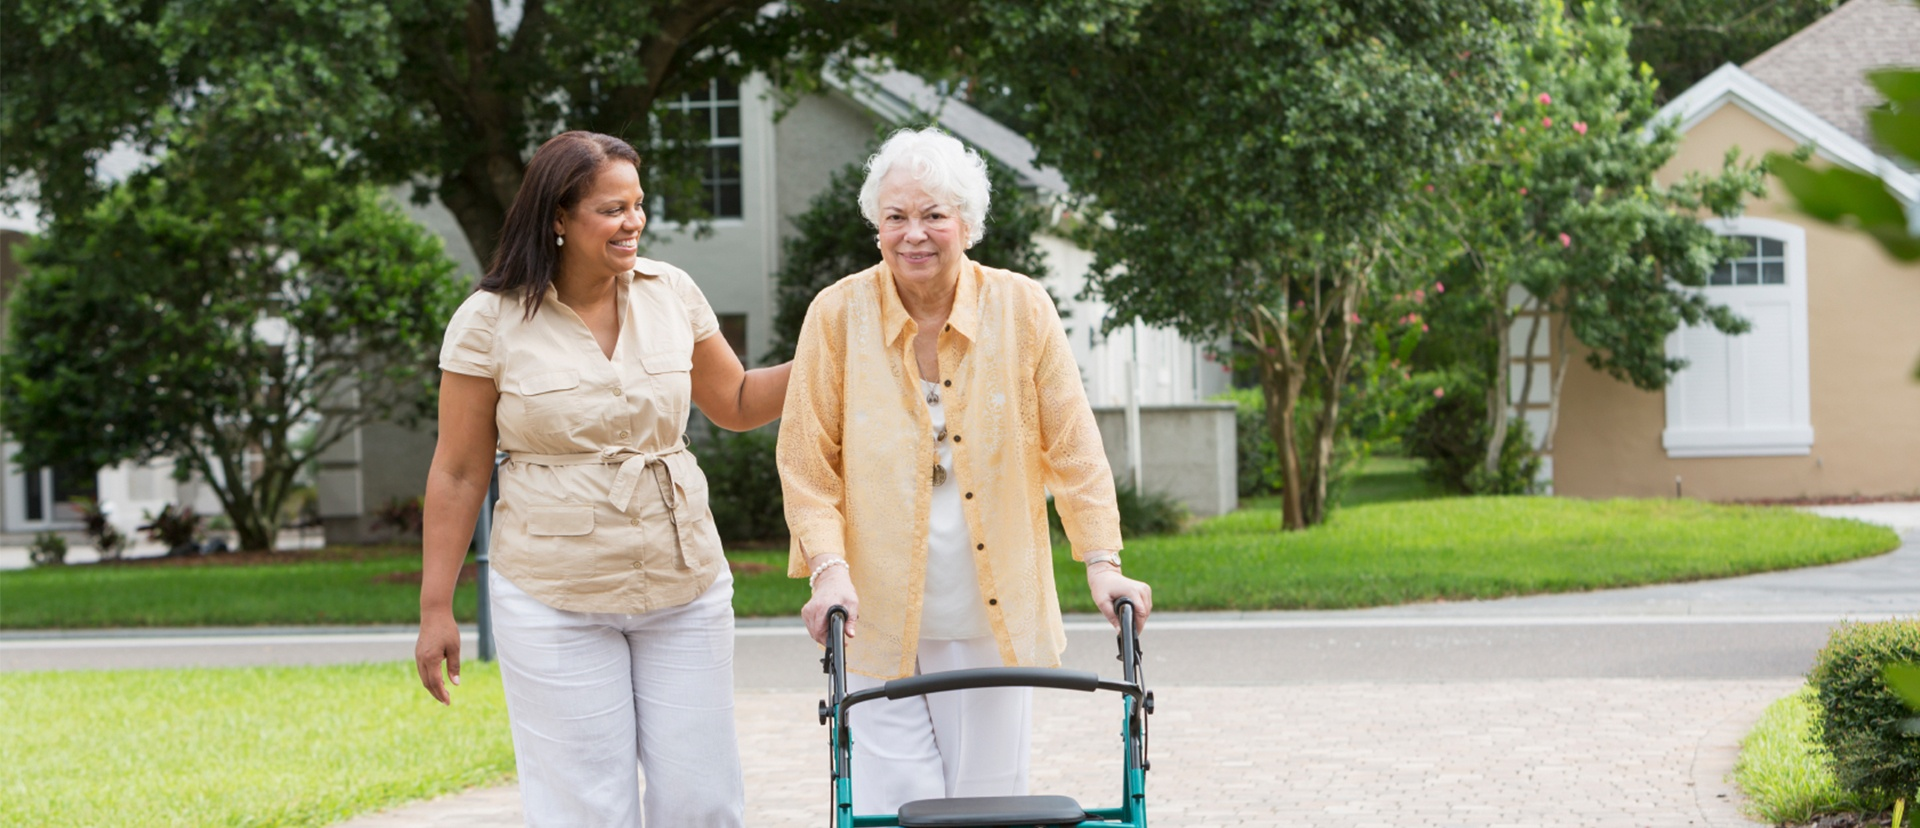 Work Life A Blog For Nurses And Caregivers Home Health Aide Jobs